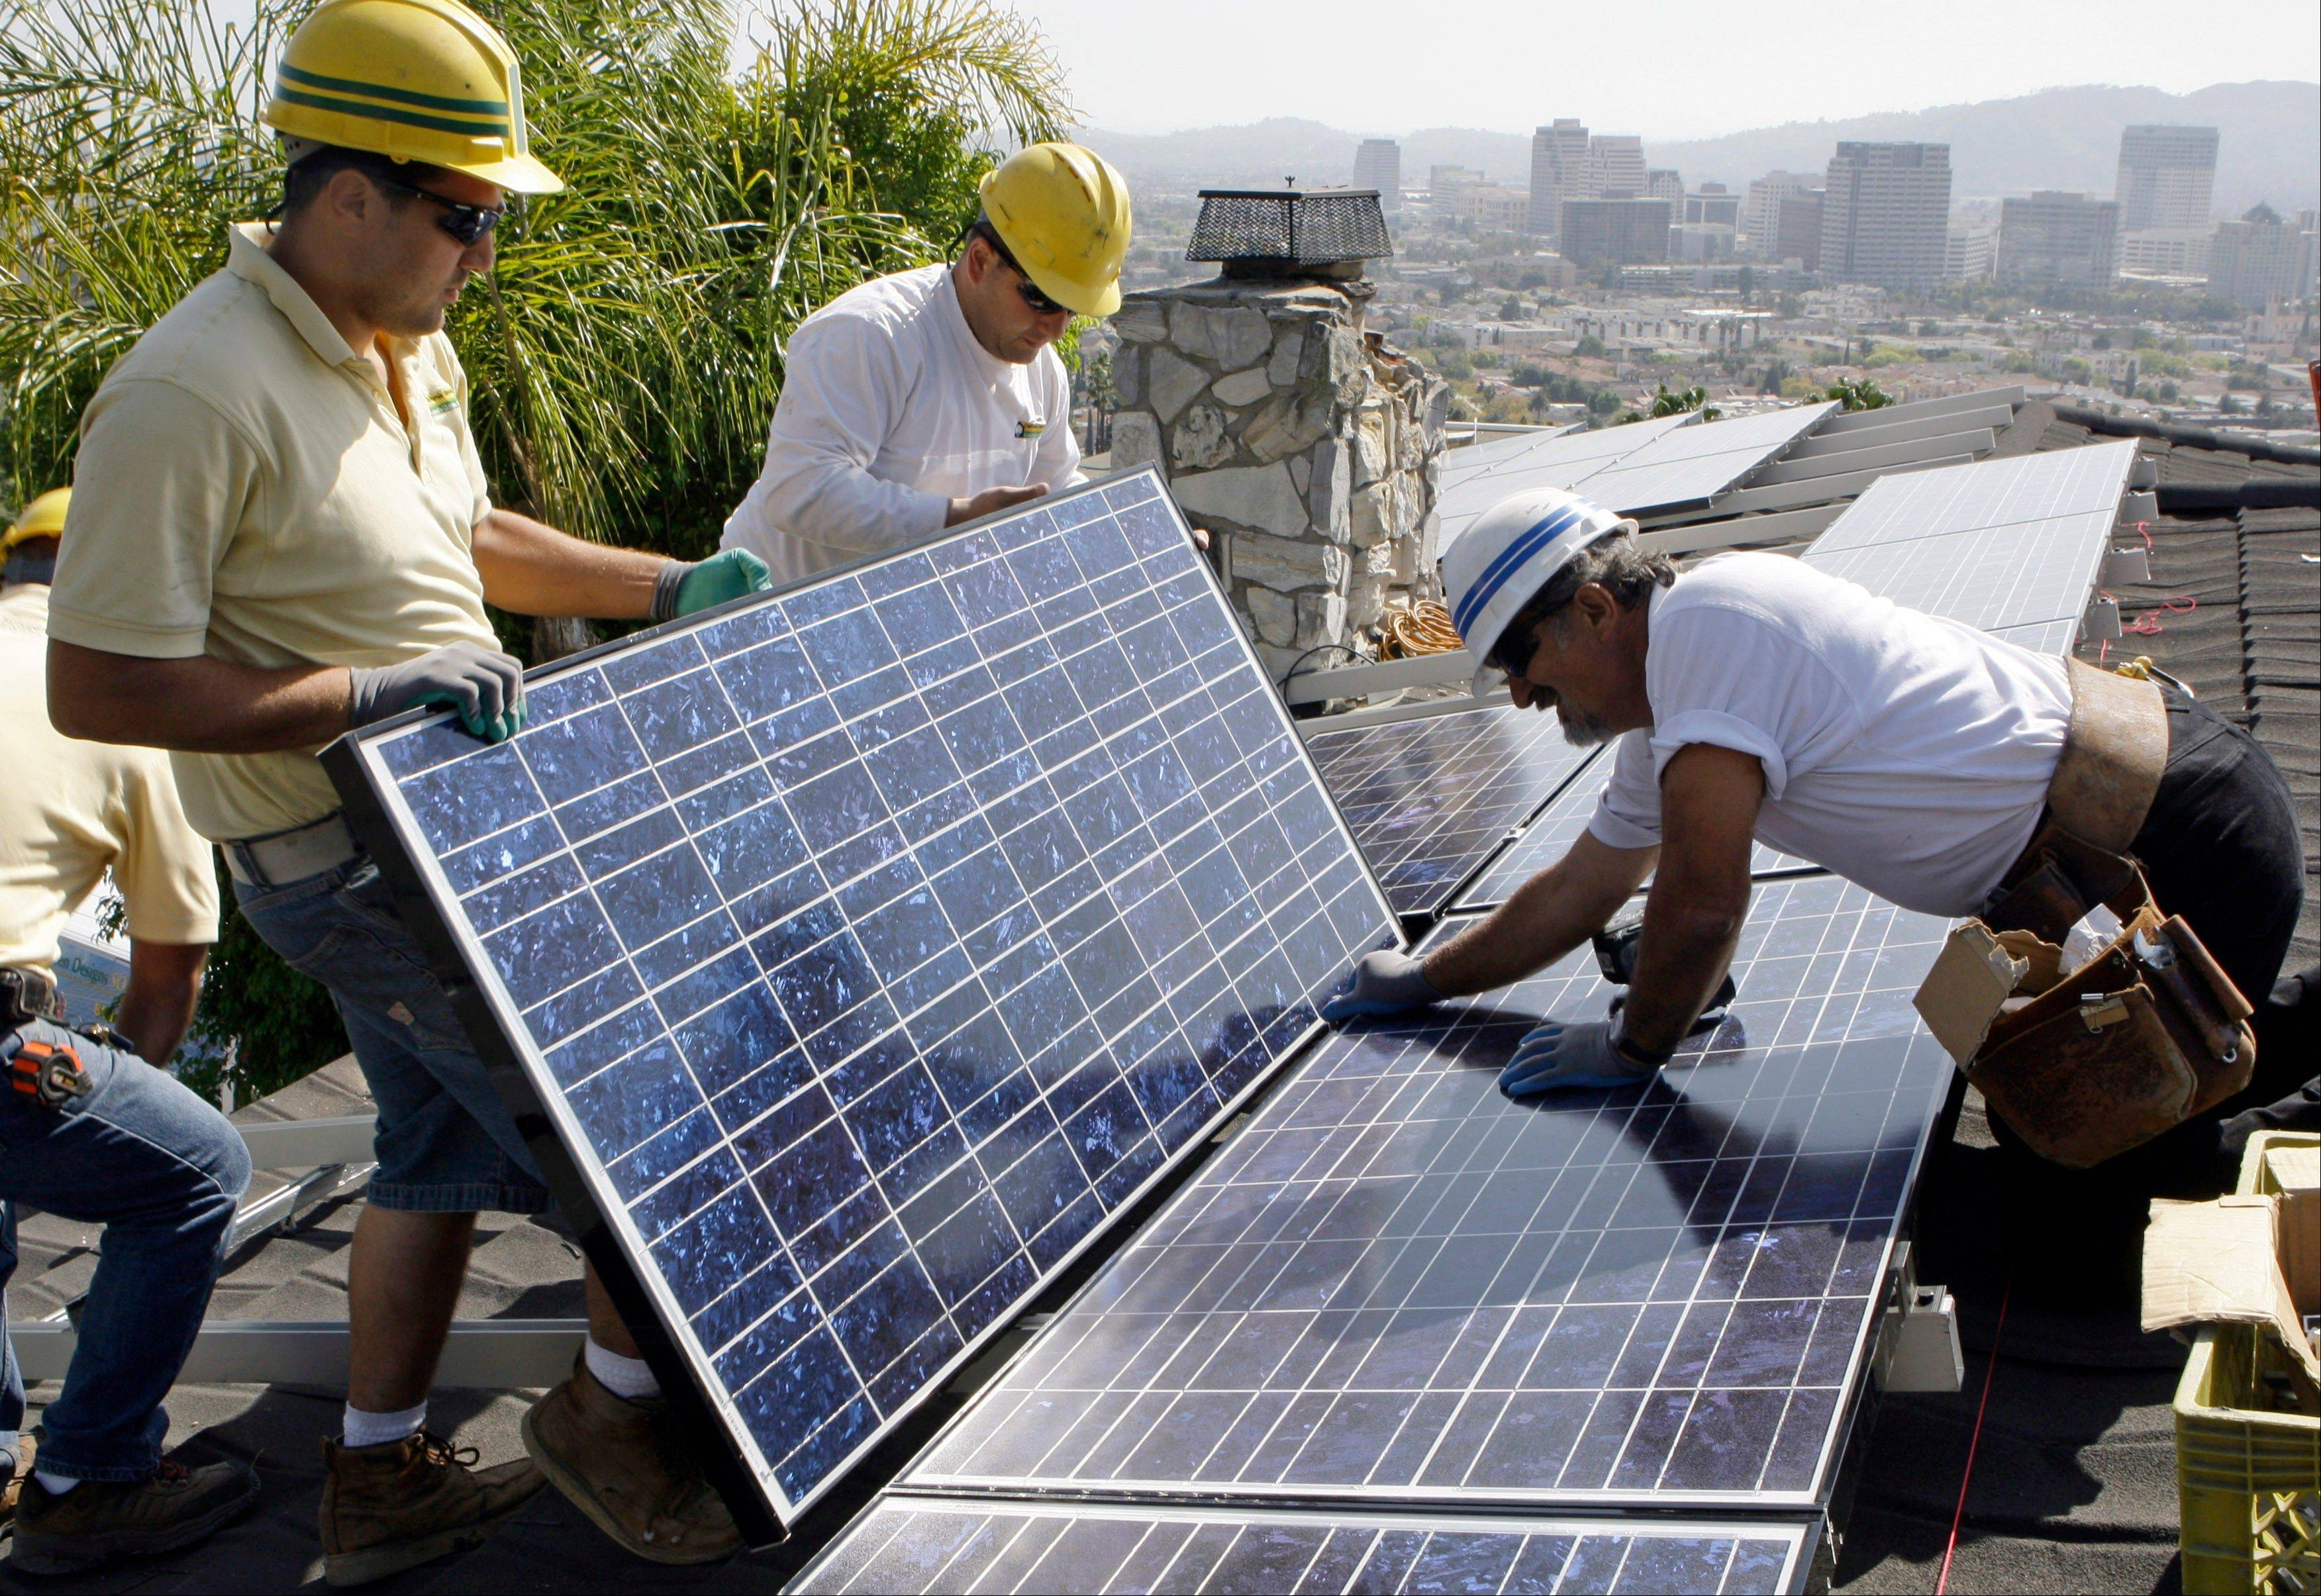 In this file photo taken in 2010, employees of California Green Design assemble solar electrical panels on the roof of a home in Glendale, Calif.